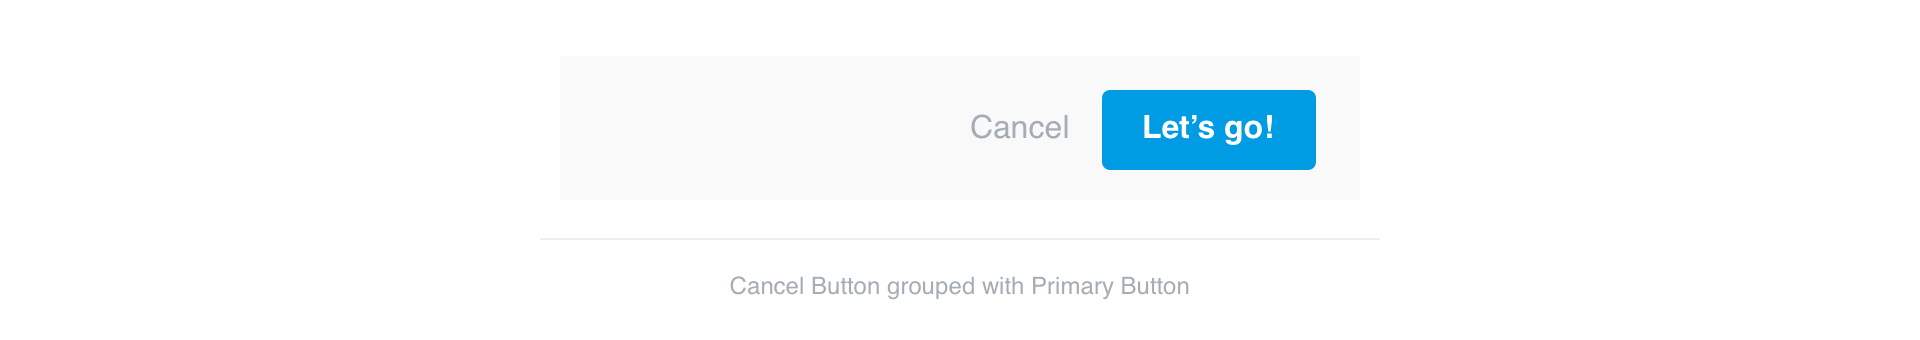 Cancel Buttons